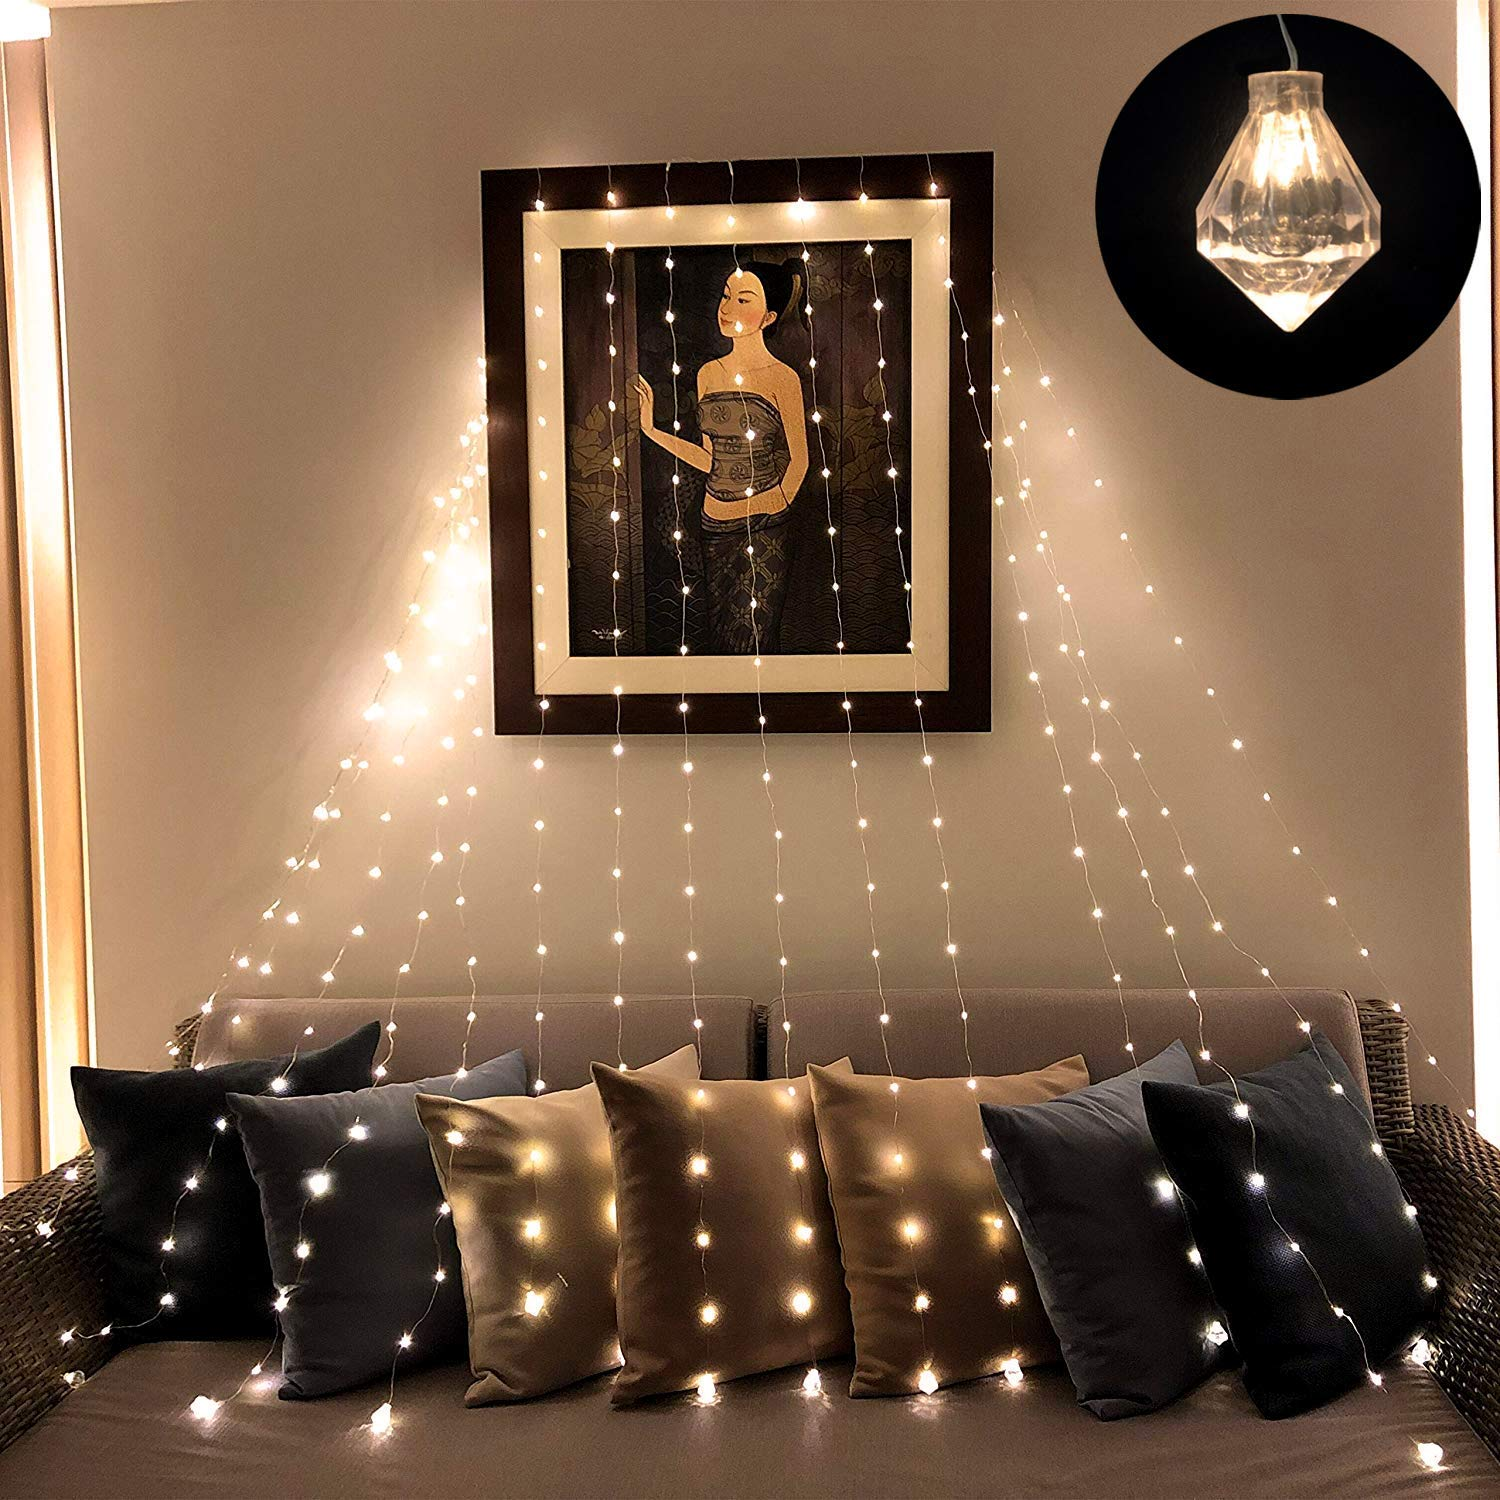 Linkind Copper Wire Fairy String Lights, Curtain Light with Diamond Shape  Pendants, 8mode Wall Decorations, Power Supply Low Voltage Safe led Lights